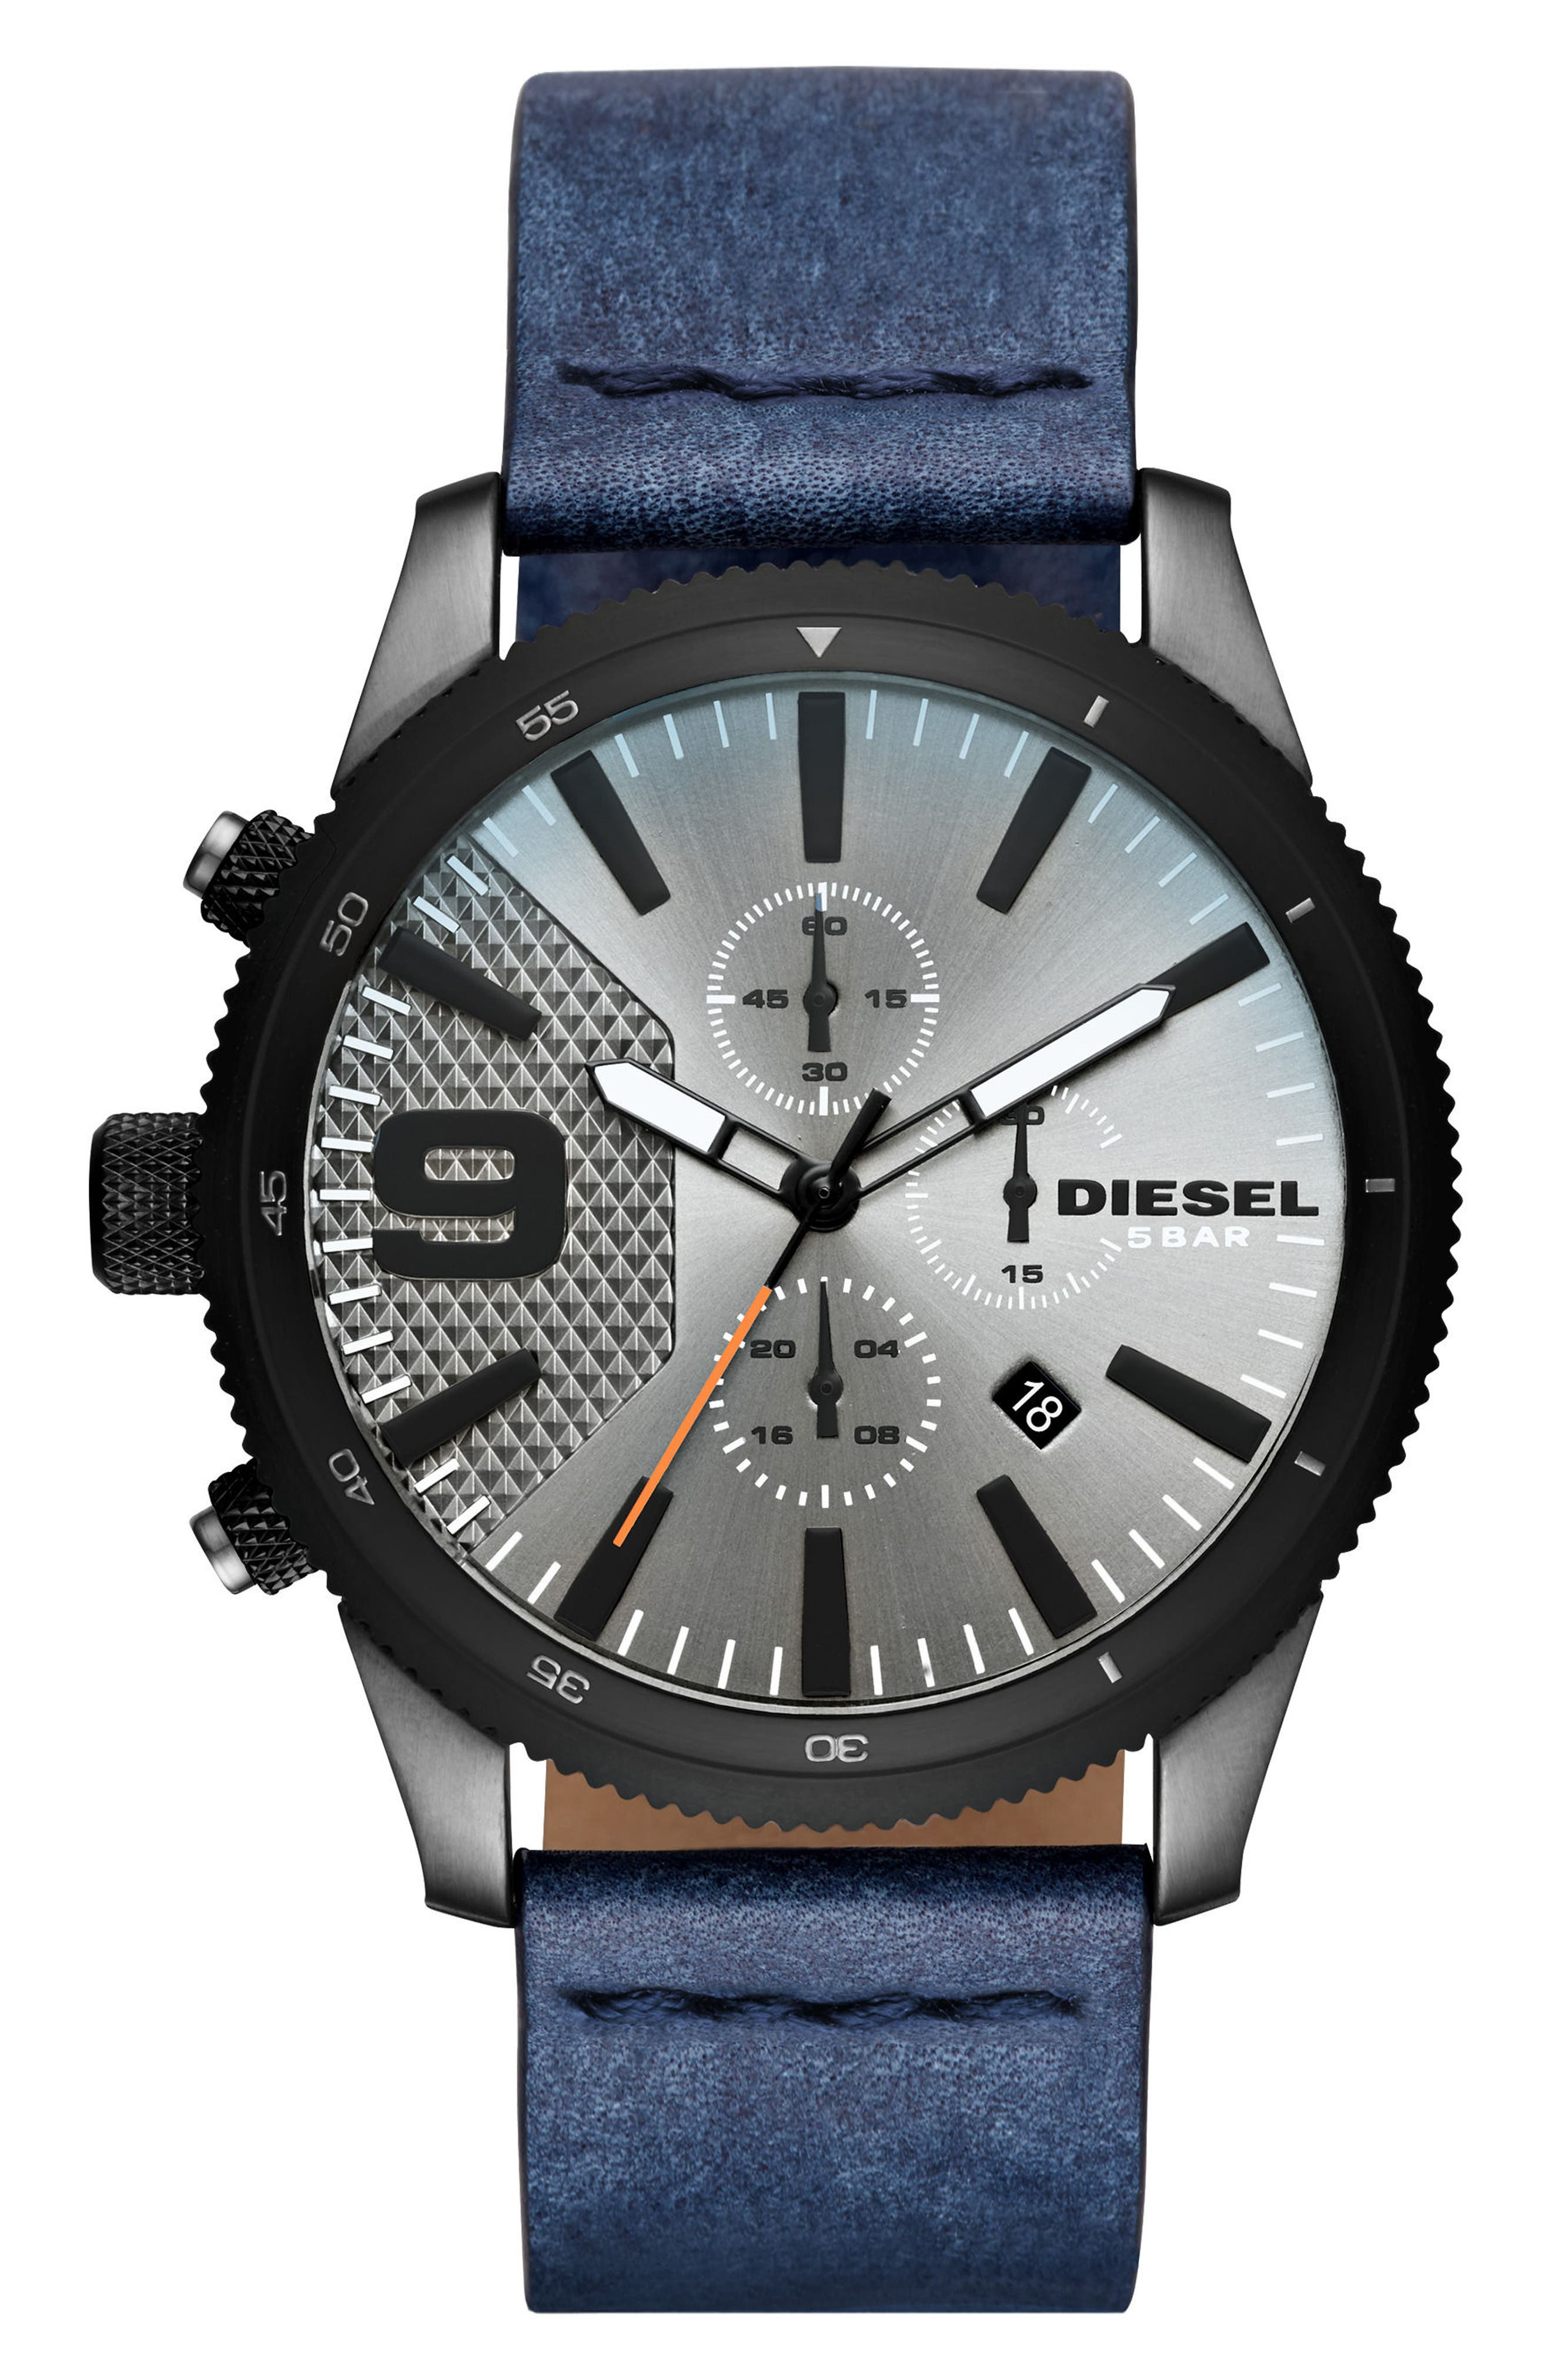 DIESEL® The Rasp Chronograph Leather Strap Watch, 46mm